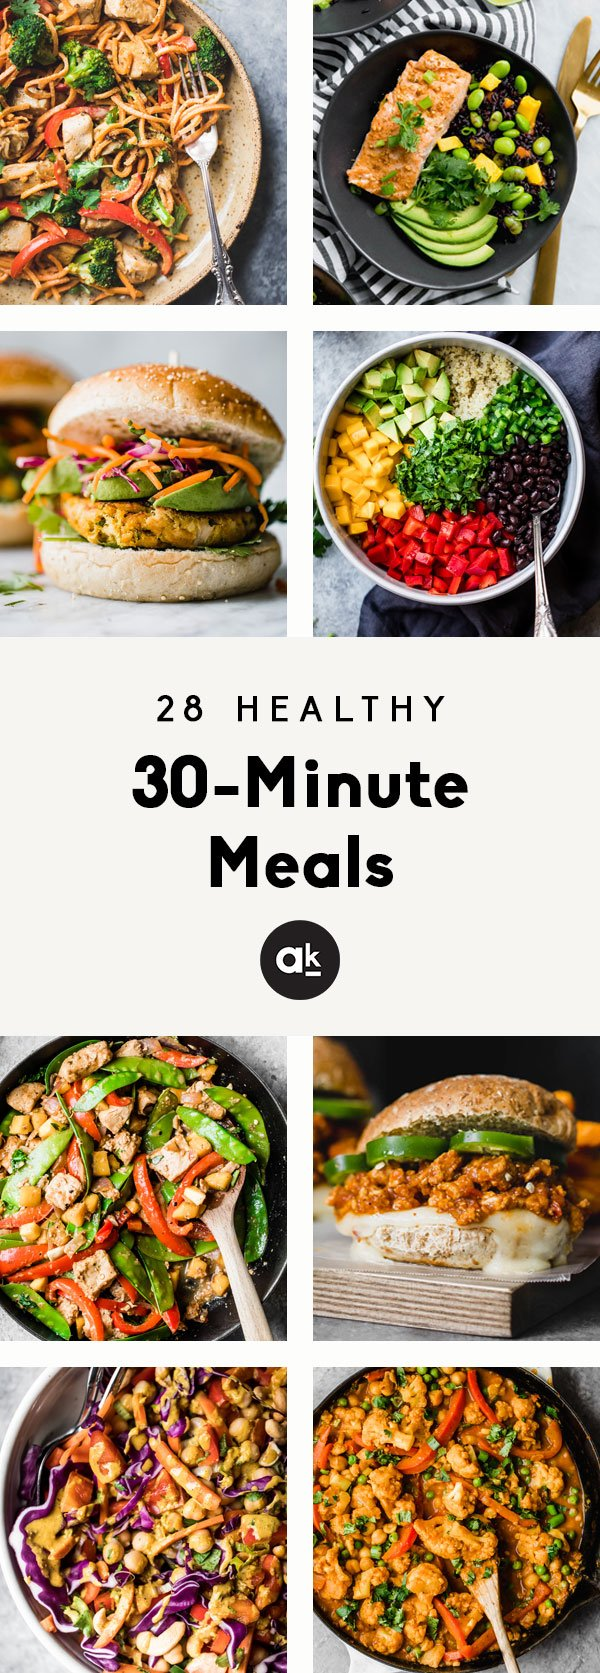 Delicious, healthy 30-minute meals that you should make ASAP! These easy recipes make the perfect weeknight lunches and dinners and a great for meal prep.